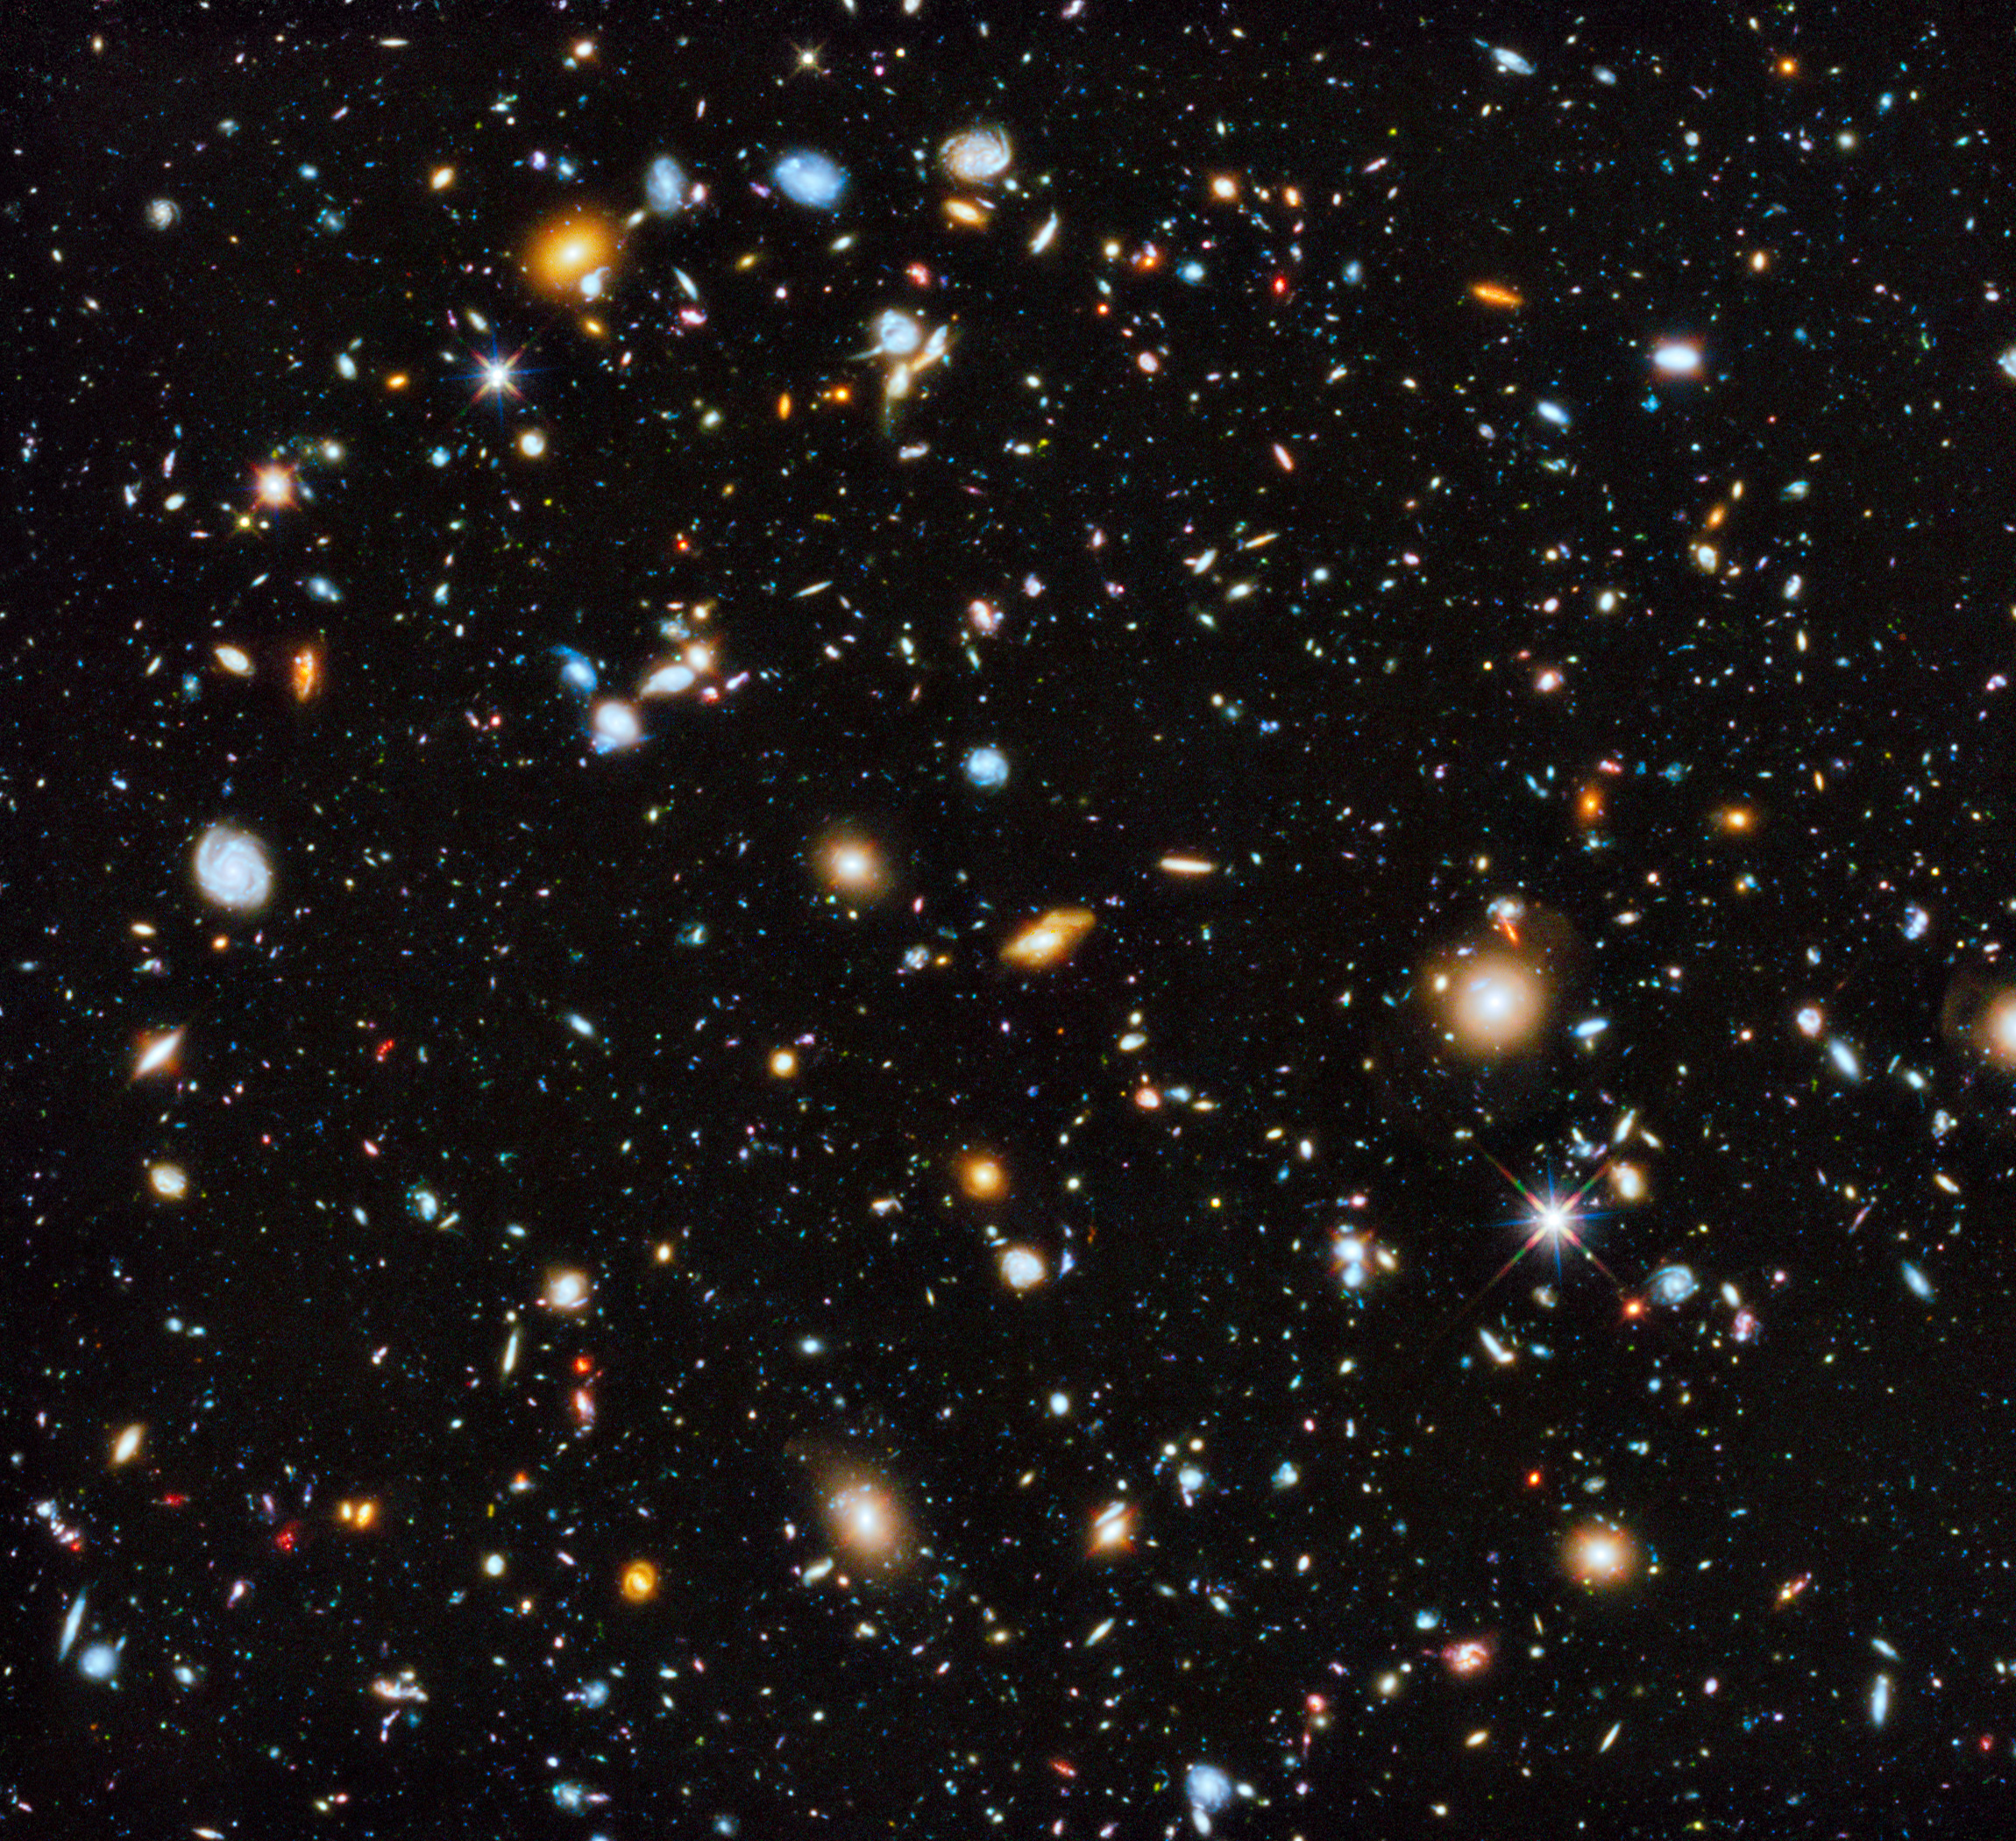 Hubble UV deep field: New image shows galaxies galore.